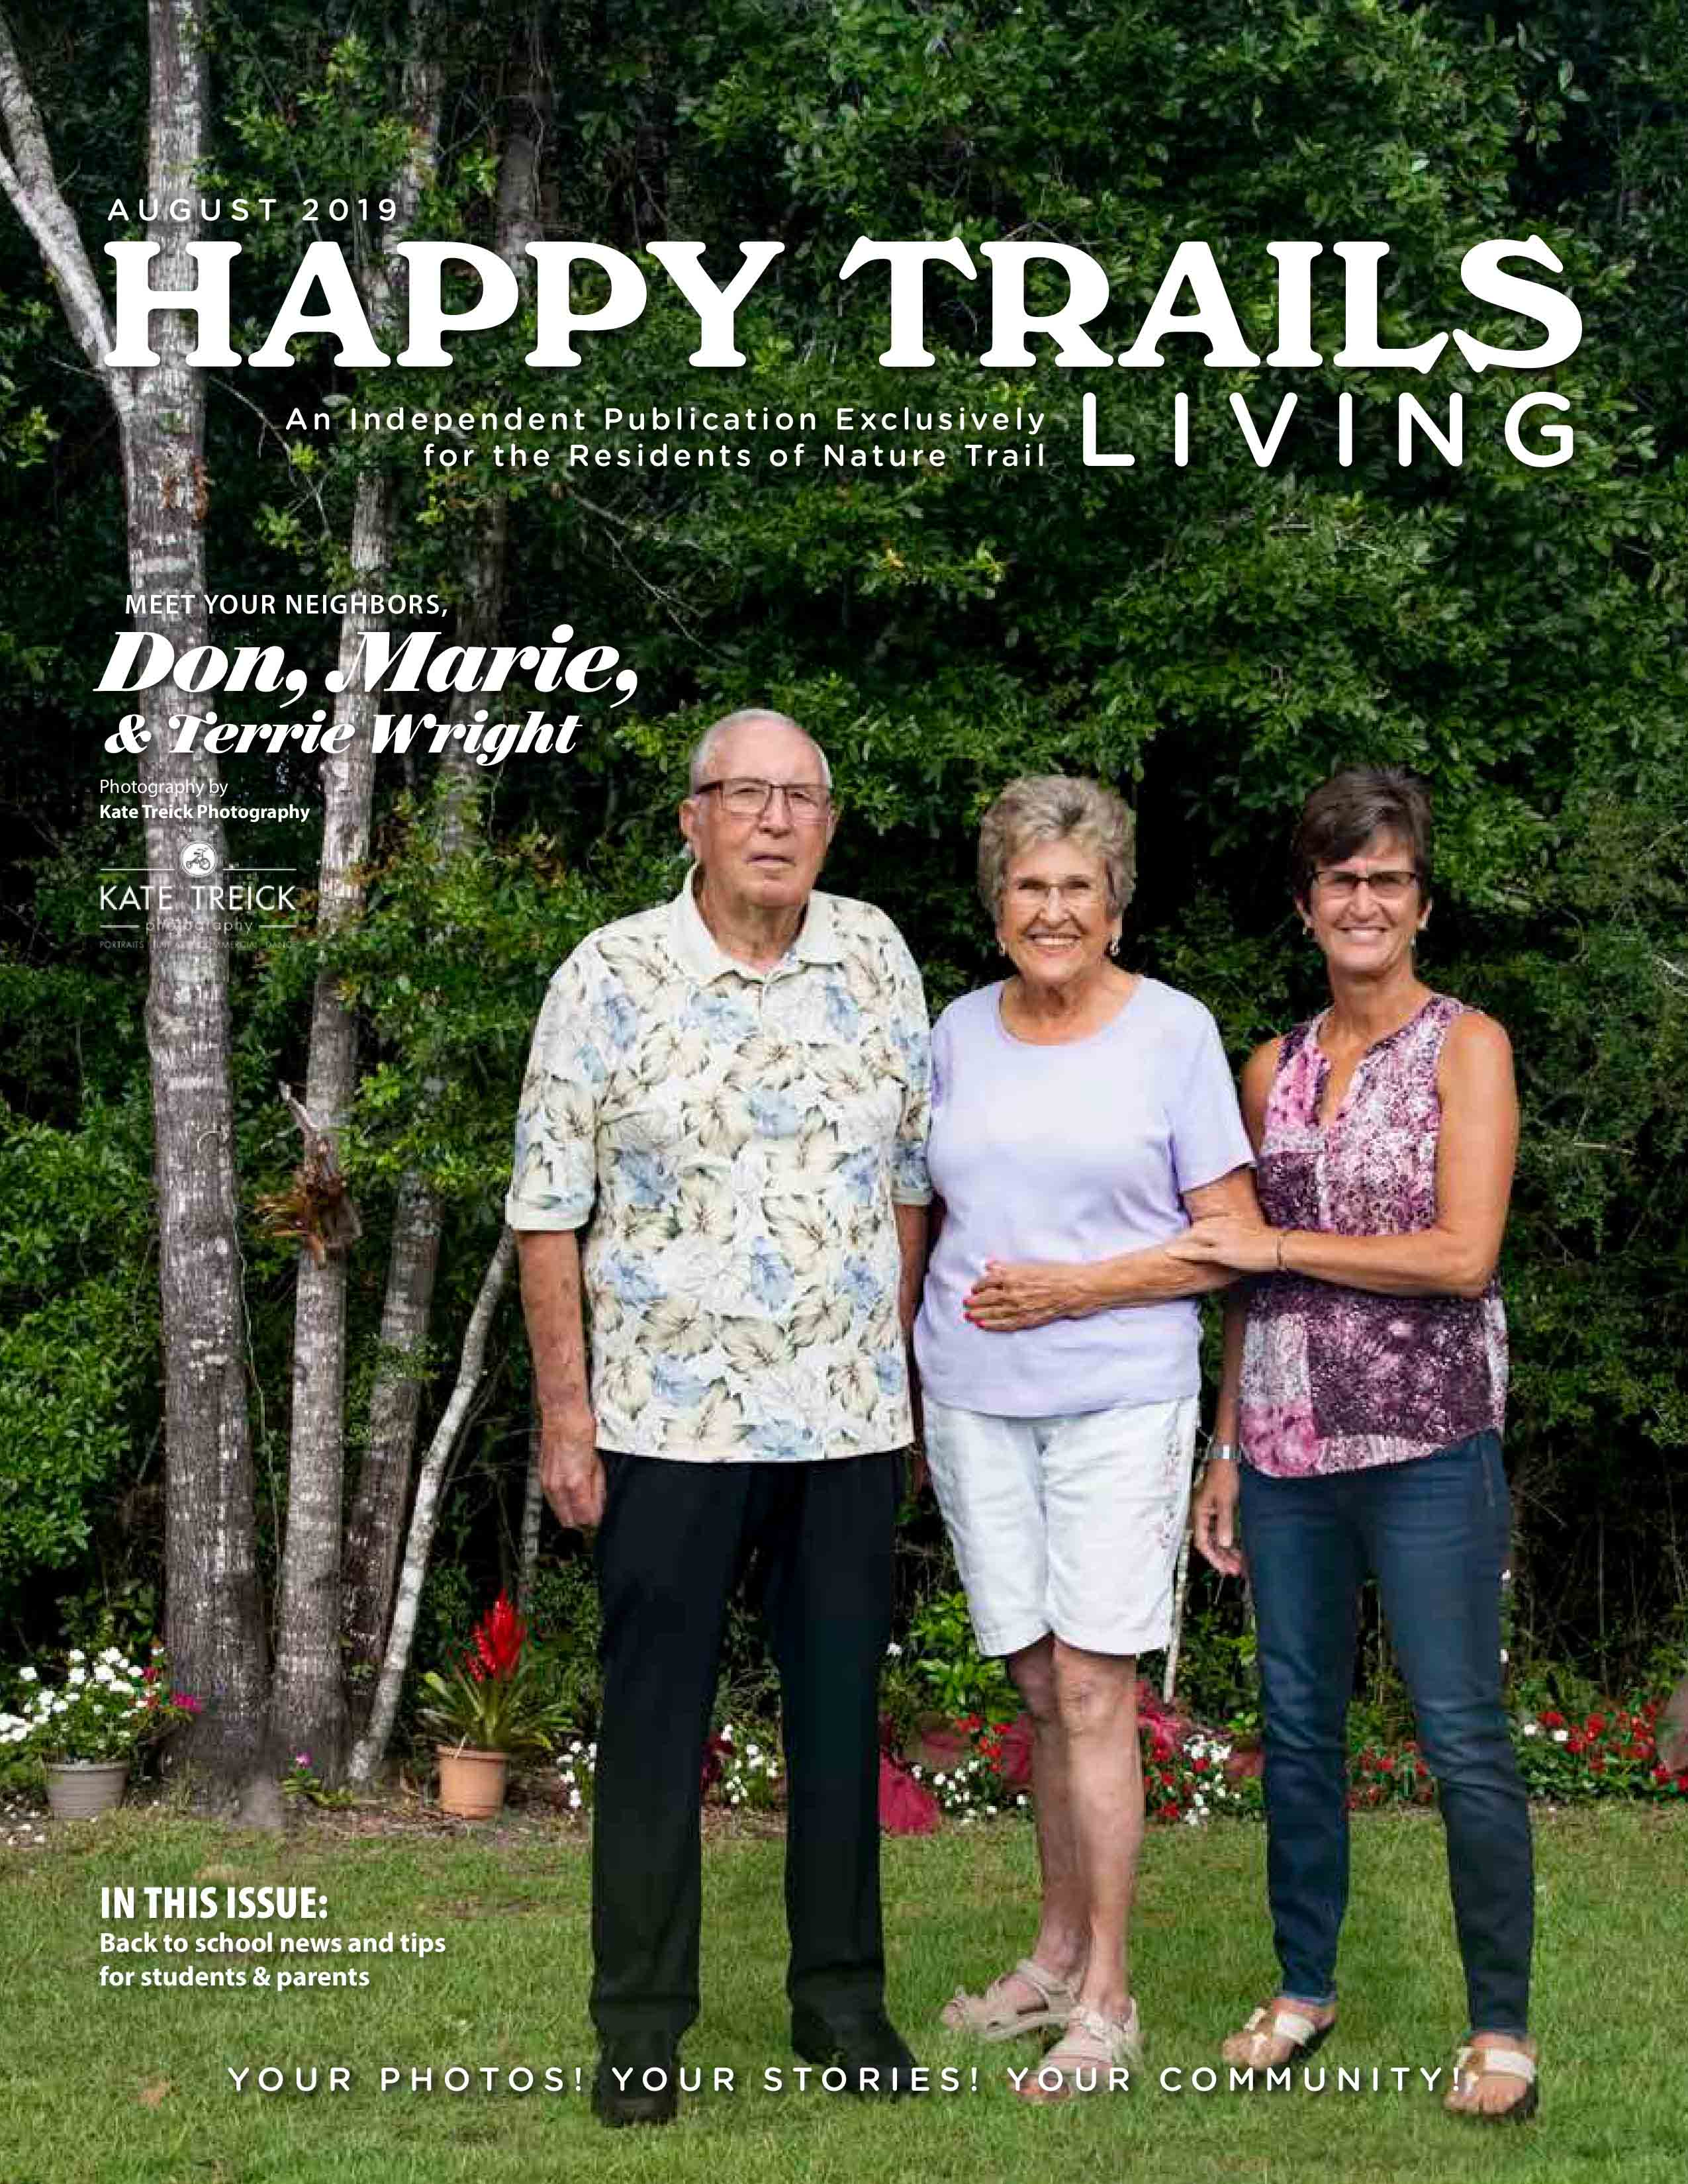 Happy Trails Living Cover for August 2019